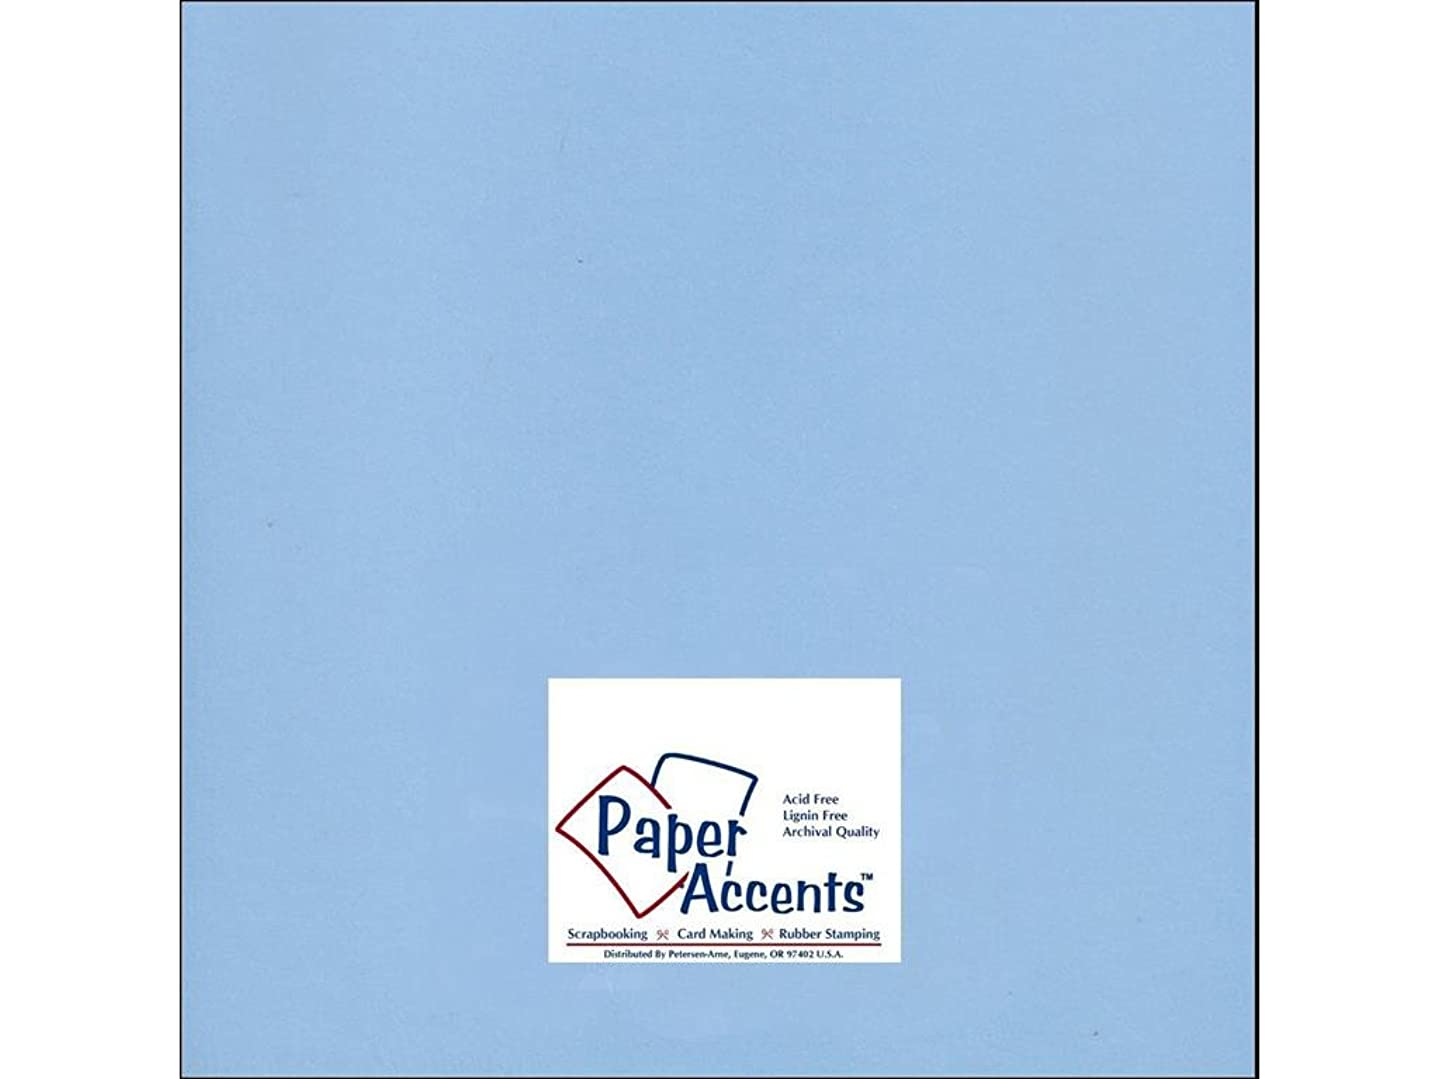 Accent Design Paper Accents Cdstk Smooth 12x12 65# Blue Willow